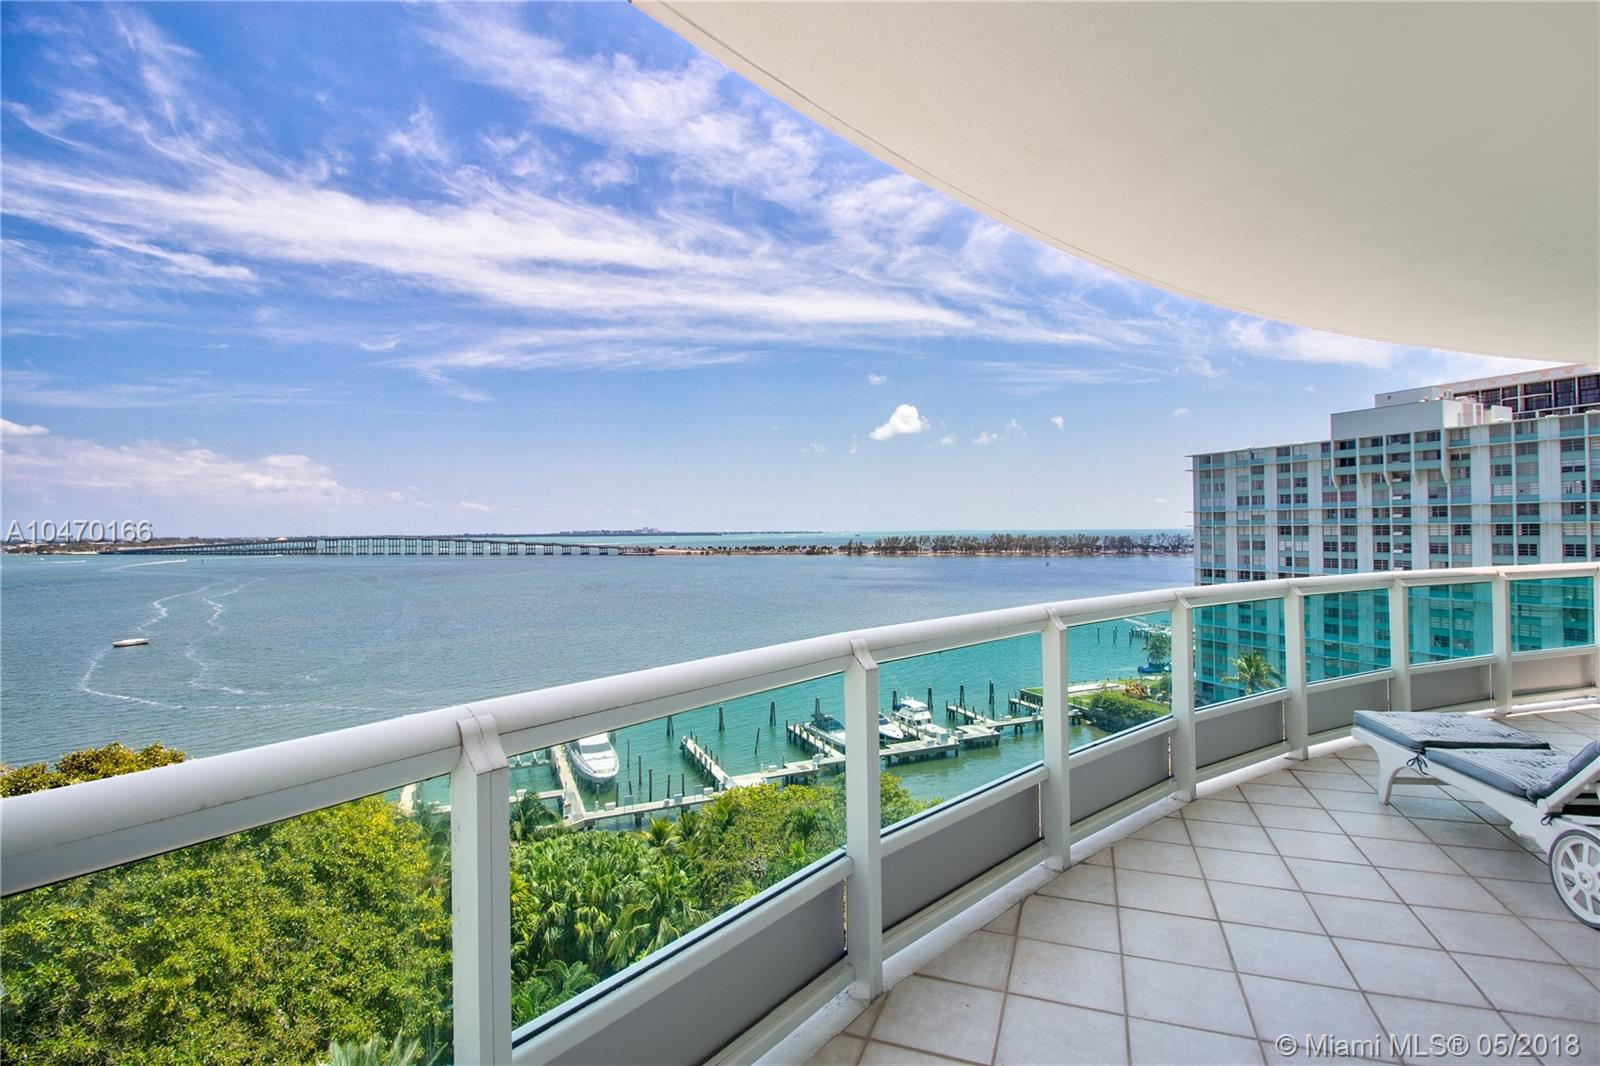 This astonishing one of a kind residence feels like a mansion in the sky, boasting 3,170SF of living area, complimented by walls of glass which floods the apartment with natural light. Mesmerizing direct ocean, city skyline & sunrise views from the comfort of your private wrap around balcony. Located in the most iconic building in Brickell. Santa Maria is a true tropical oasis offering residents top of the line amenities including Spa & Fitness Center with city views,Oceanfront Pool with Bar services, Valet Parking & much more.Inside you will find 3beds & 4.5baths with private elevator, MB offers 2 huge walk-in closets, private bath with shower & separate Jacuzzi tub.Unit also includes 2 guests rooms with private baths,Laundry room,formal dining room & spacious kitchen with cooking island.